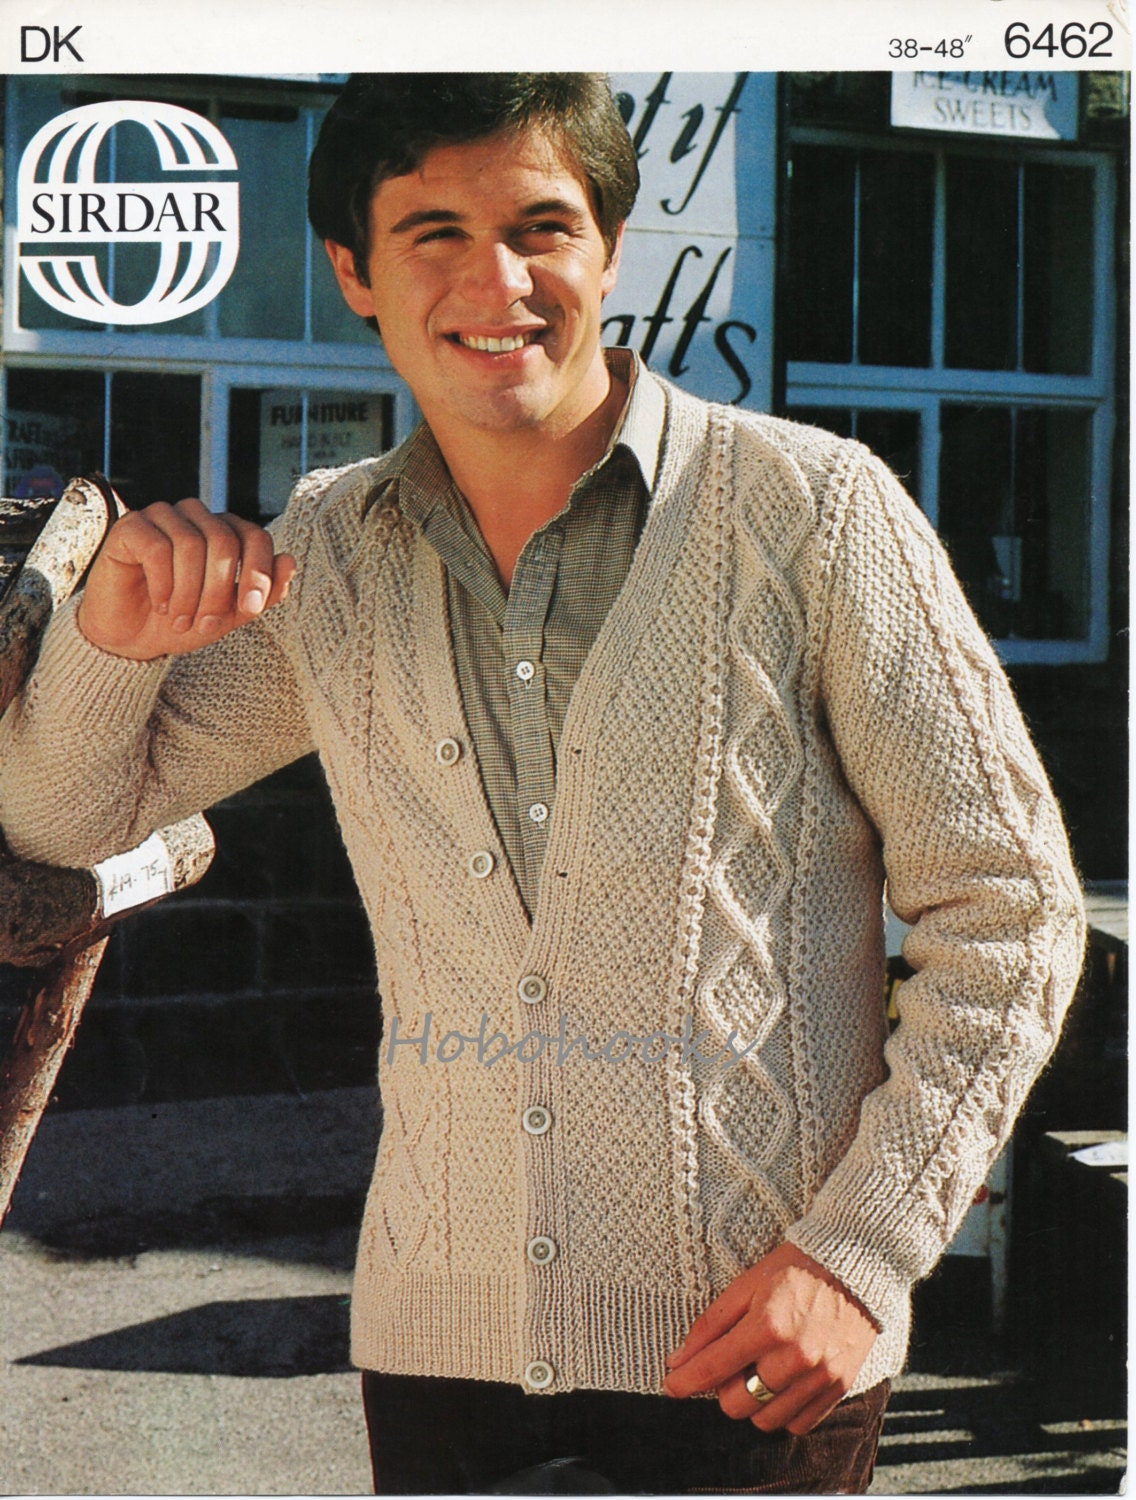 mens aran cardigan knitting pattern cable jacket 38-48inch DK